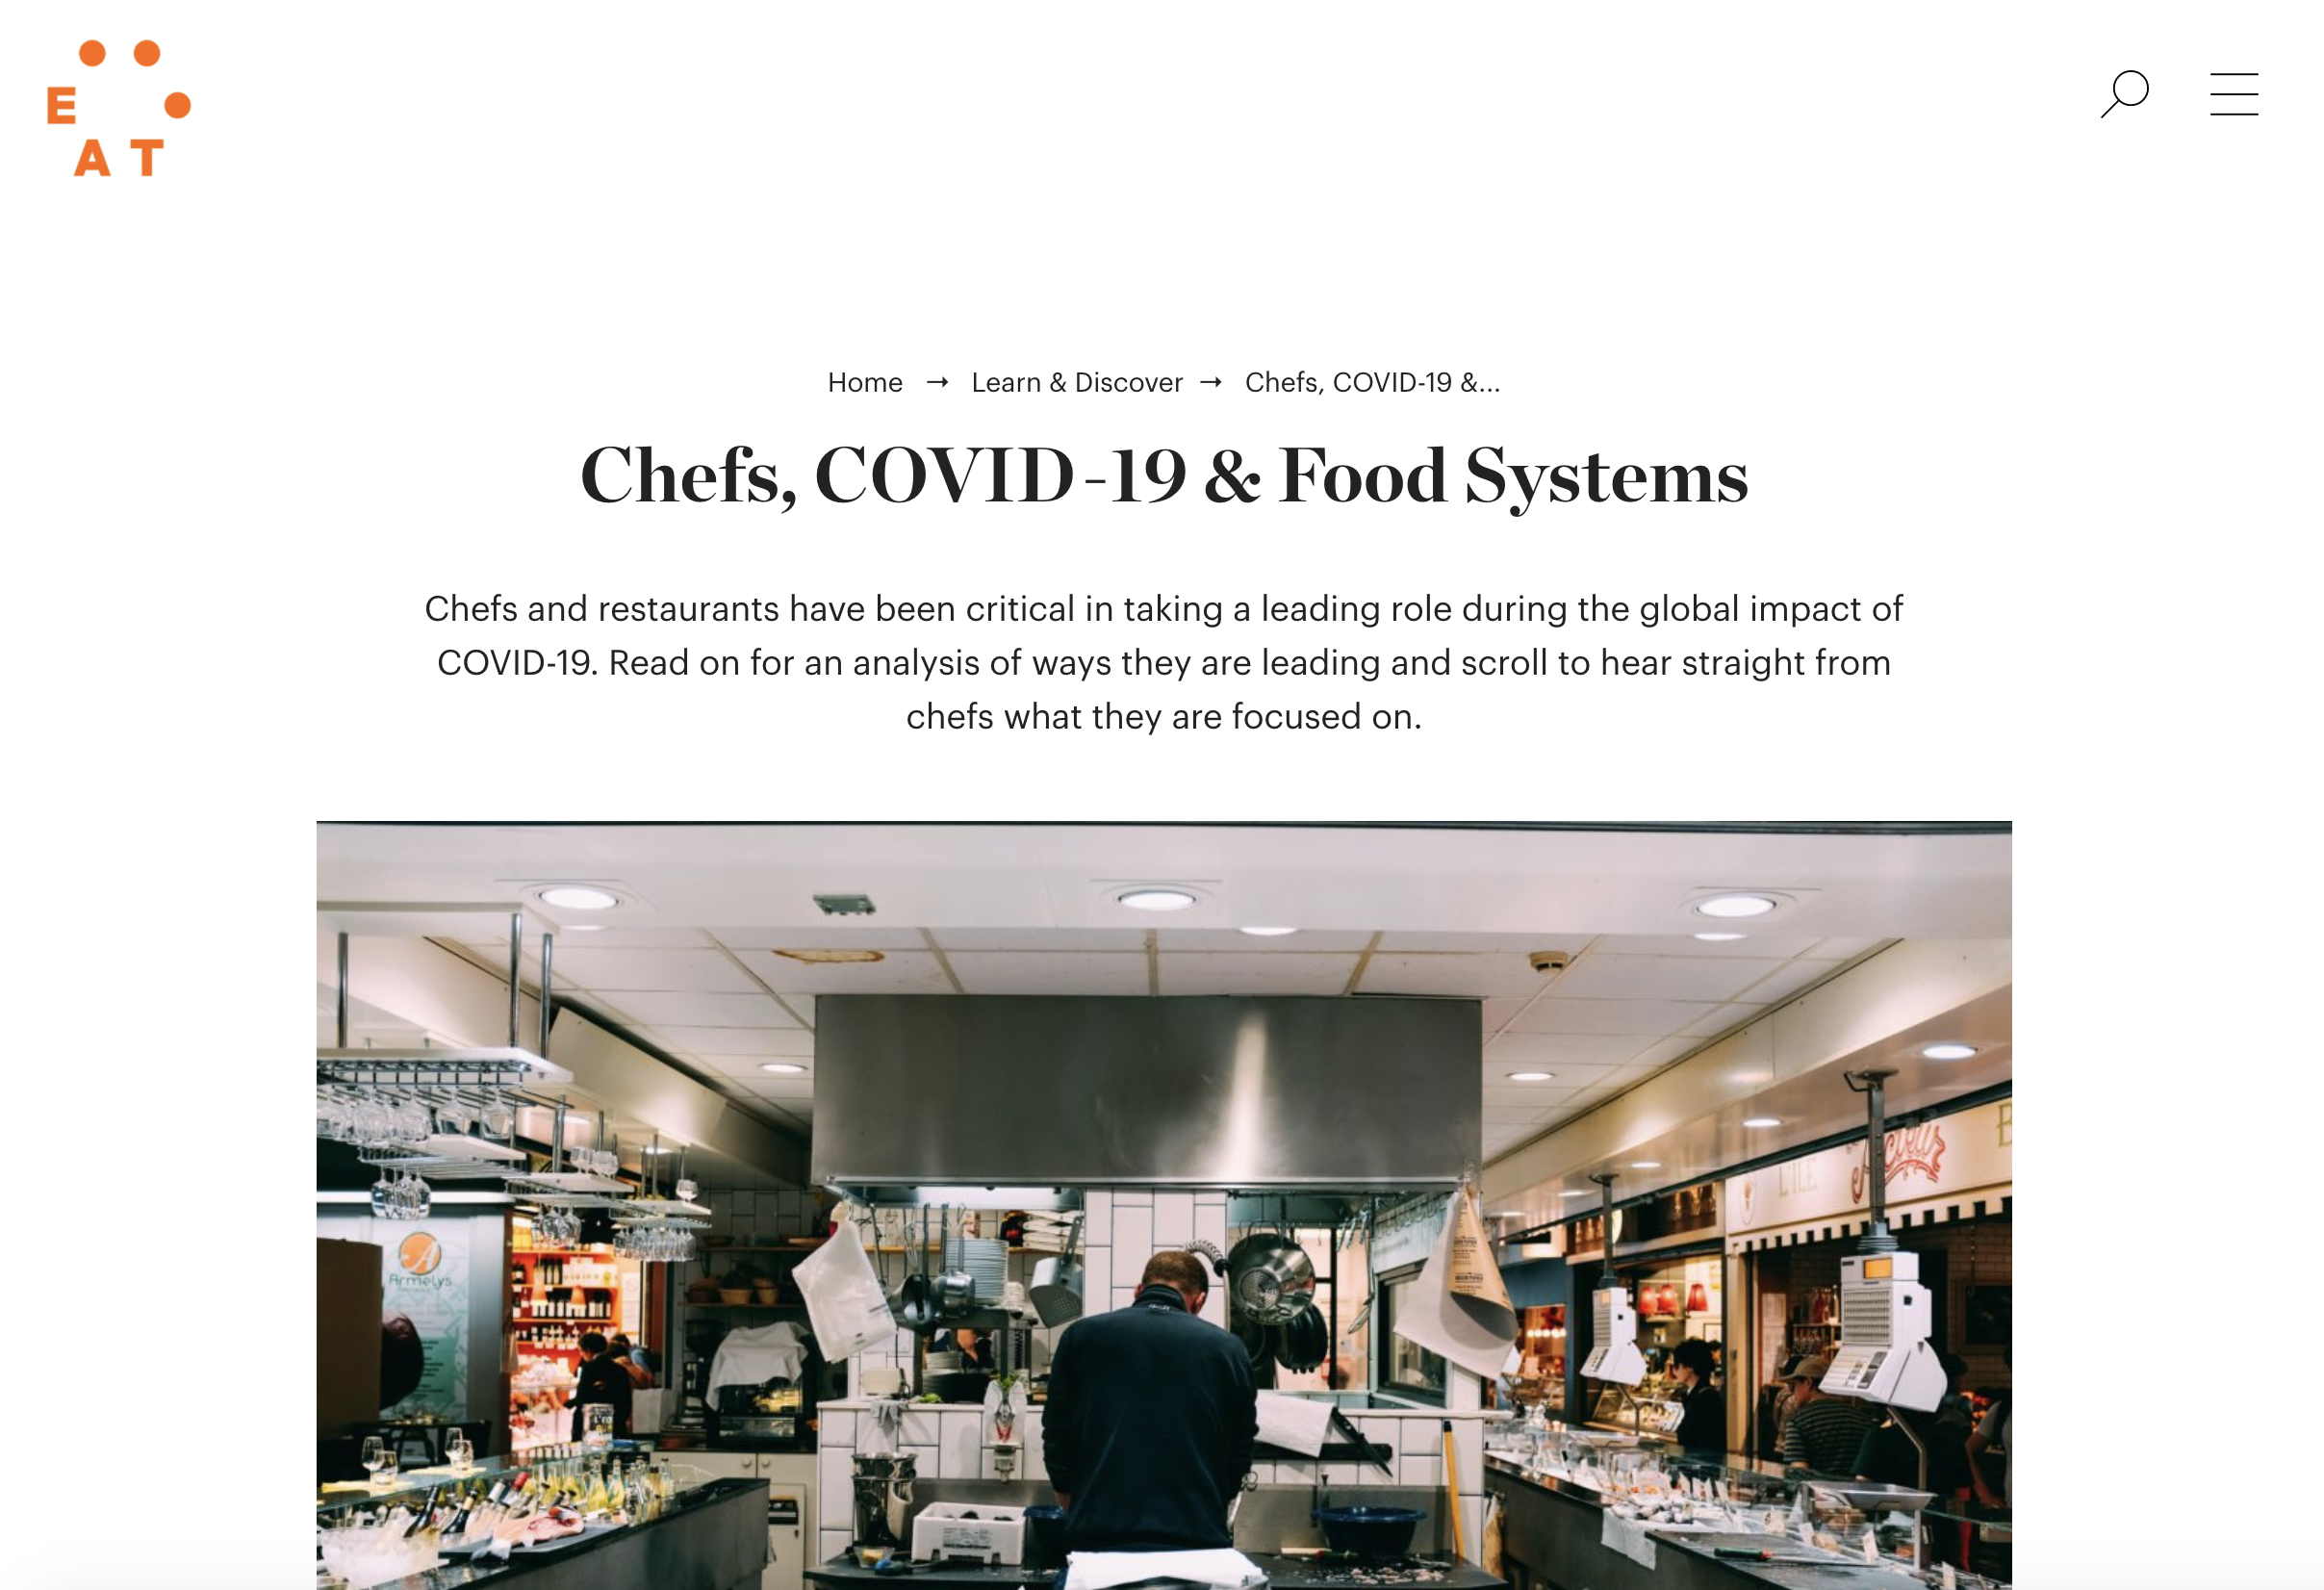 Chefs, COVID-19 & Food Systems